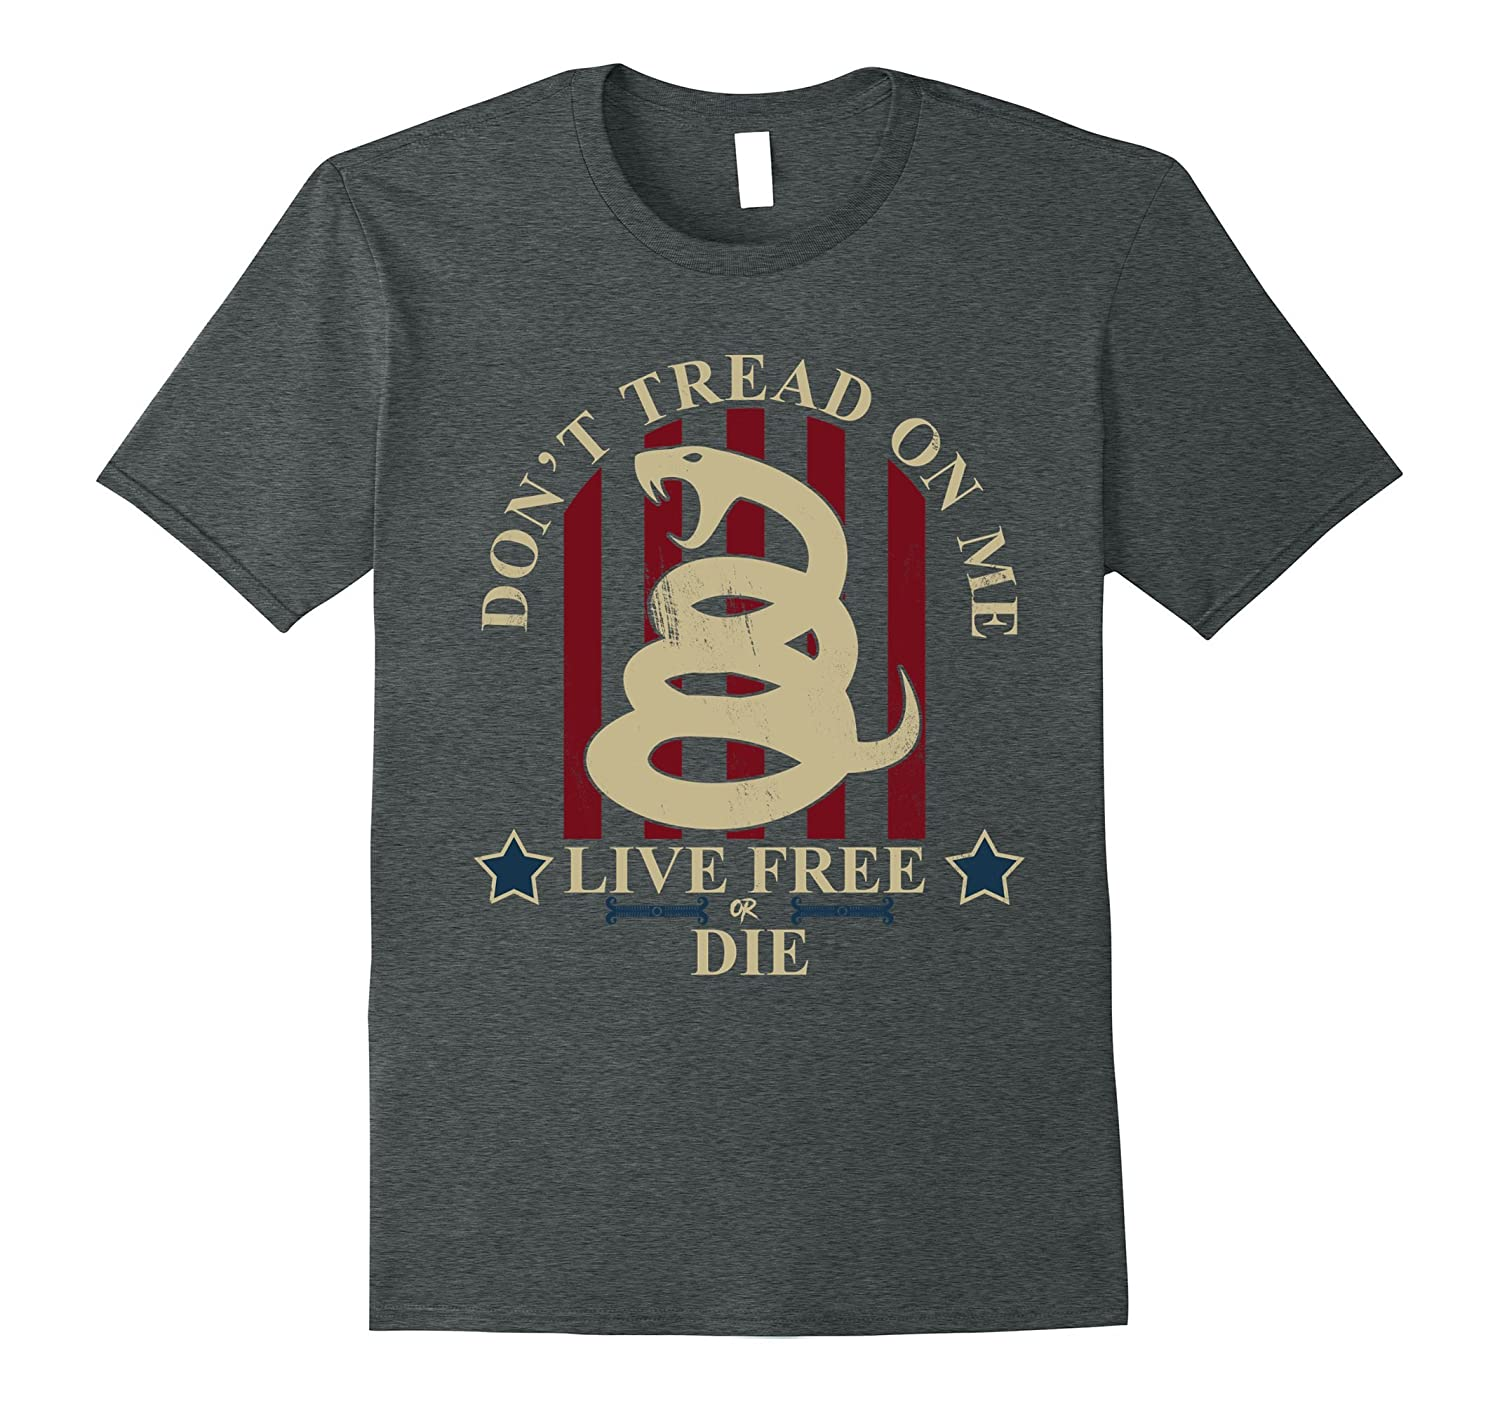 Don't Tread On Me Live Free or Die T-Shirt for Men and Women-FL